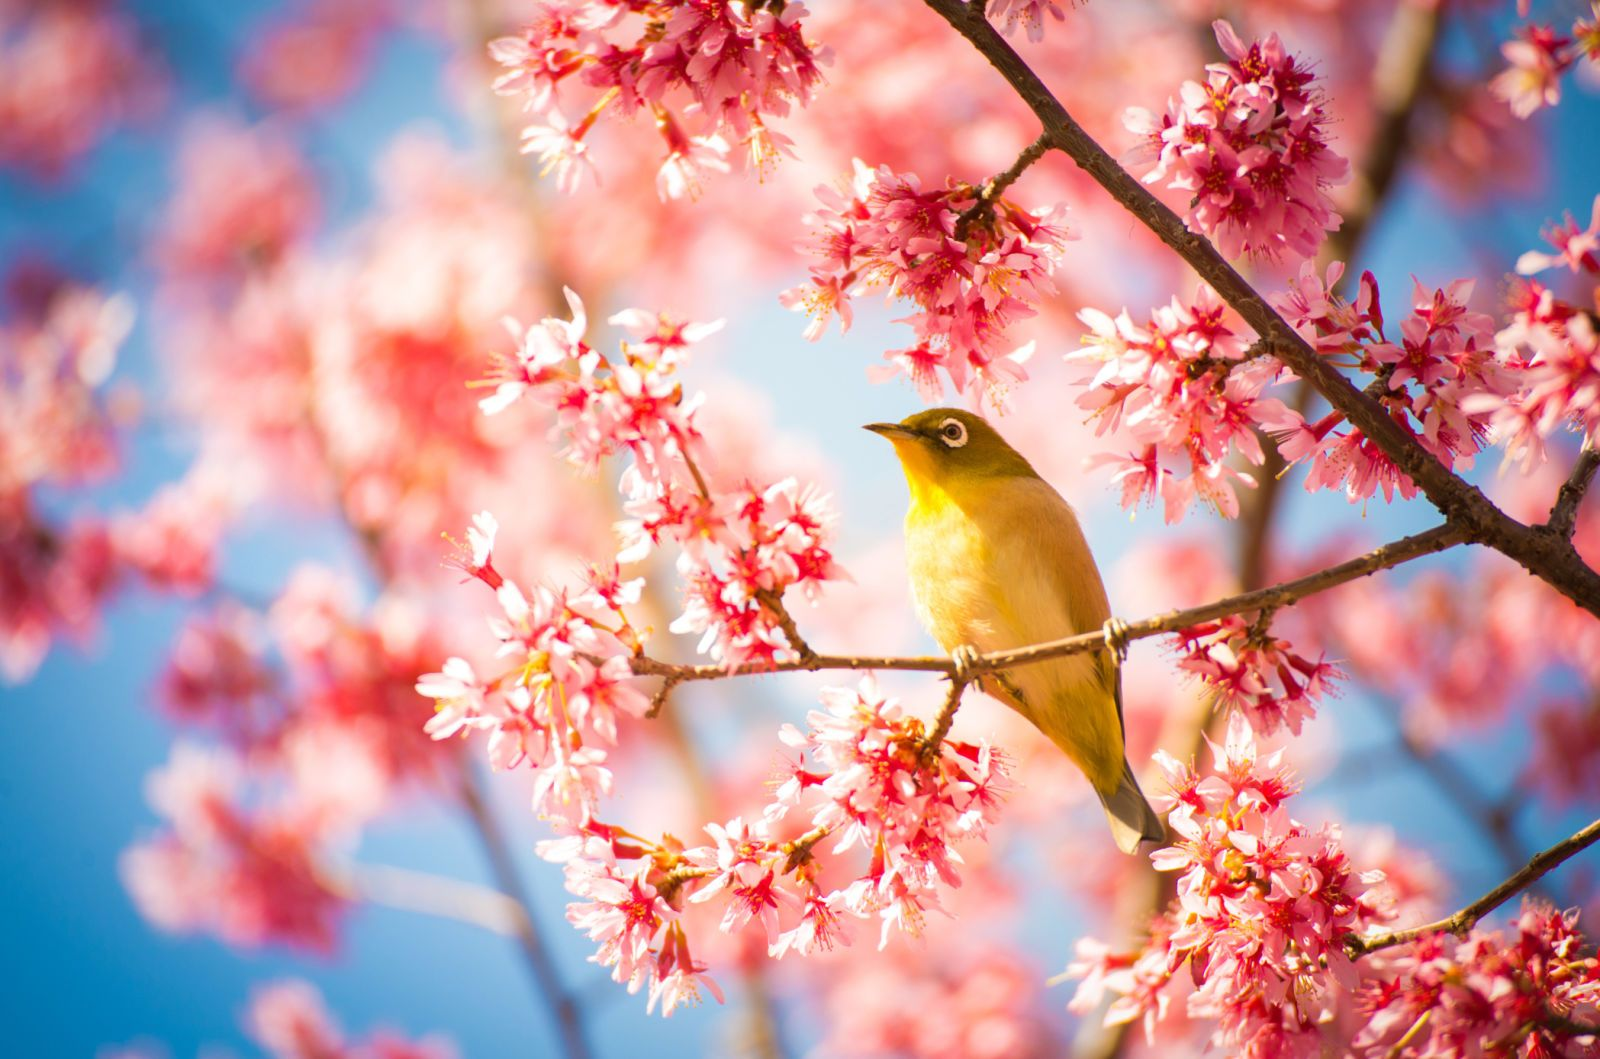 Cherry Blossom Tree Facts That You Definitely Never Knew Before Cherry Blossom Japan Japanese Cherry Blossom Cherry Blossom